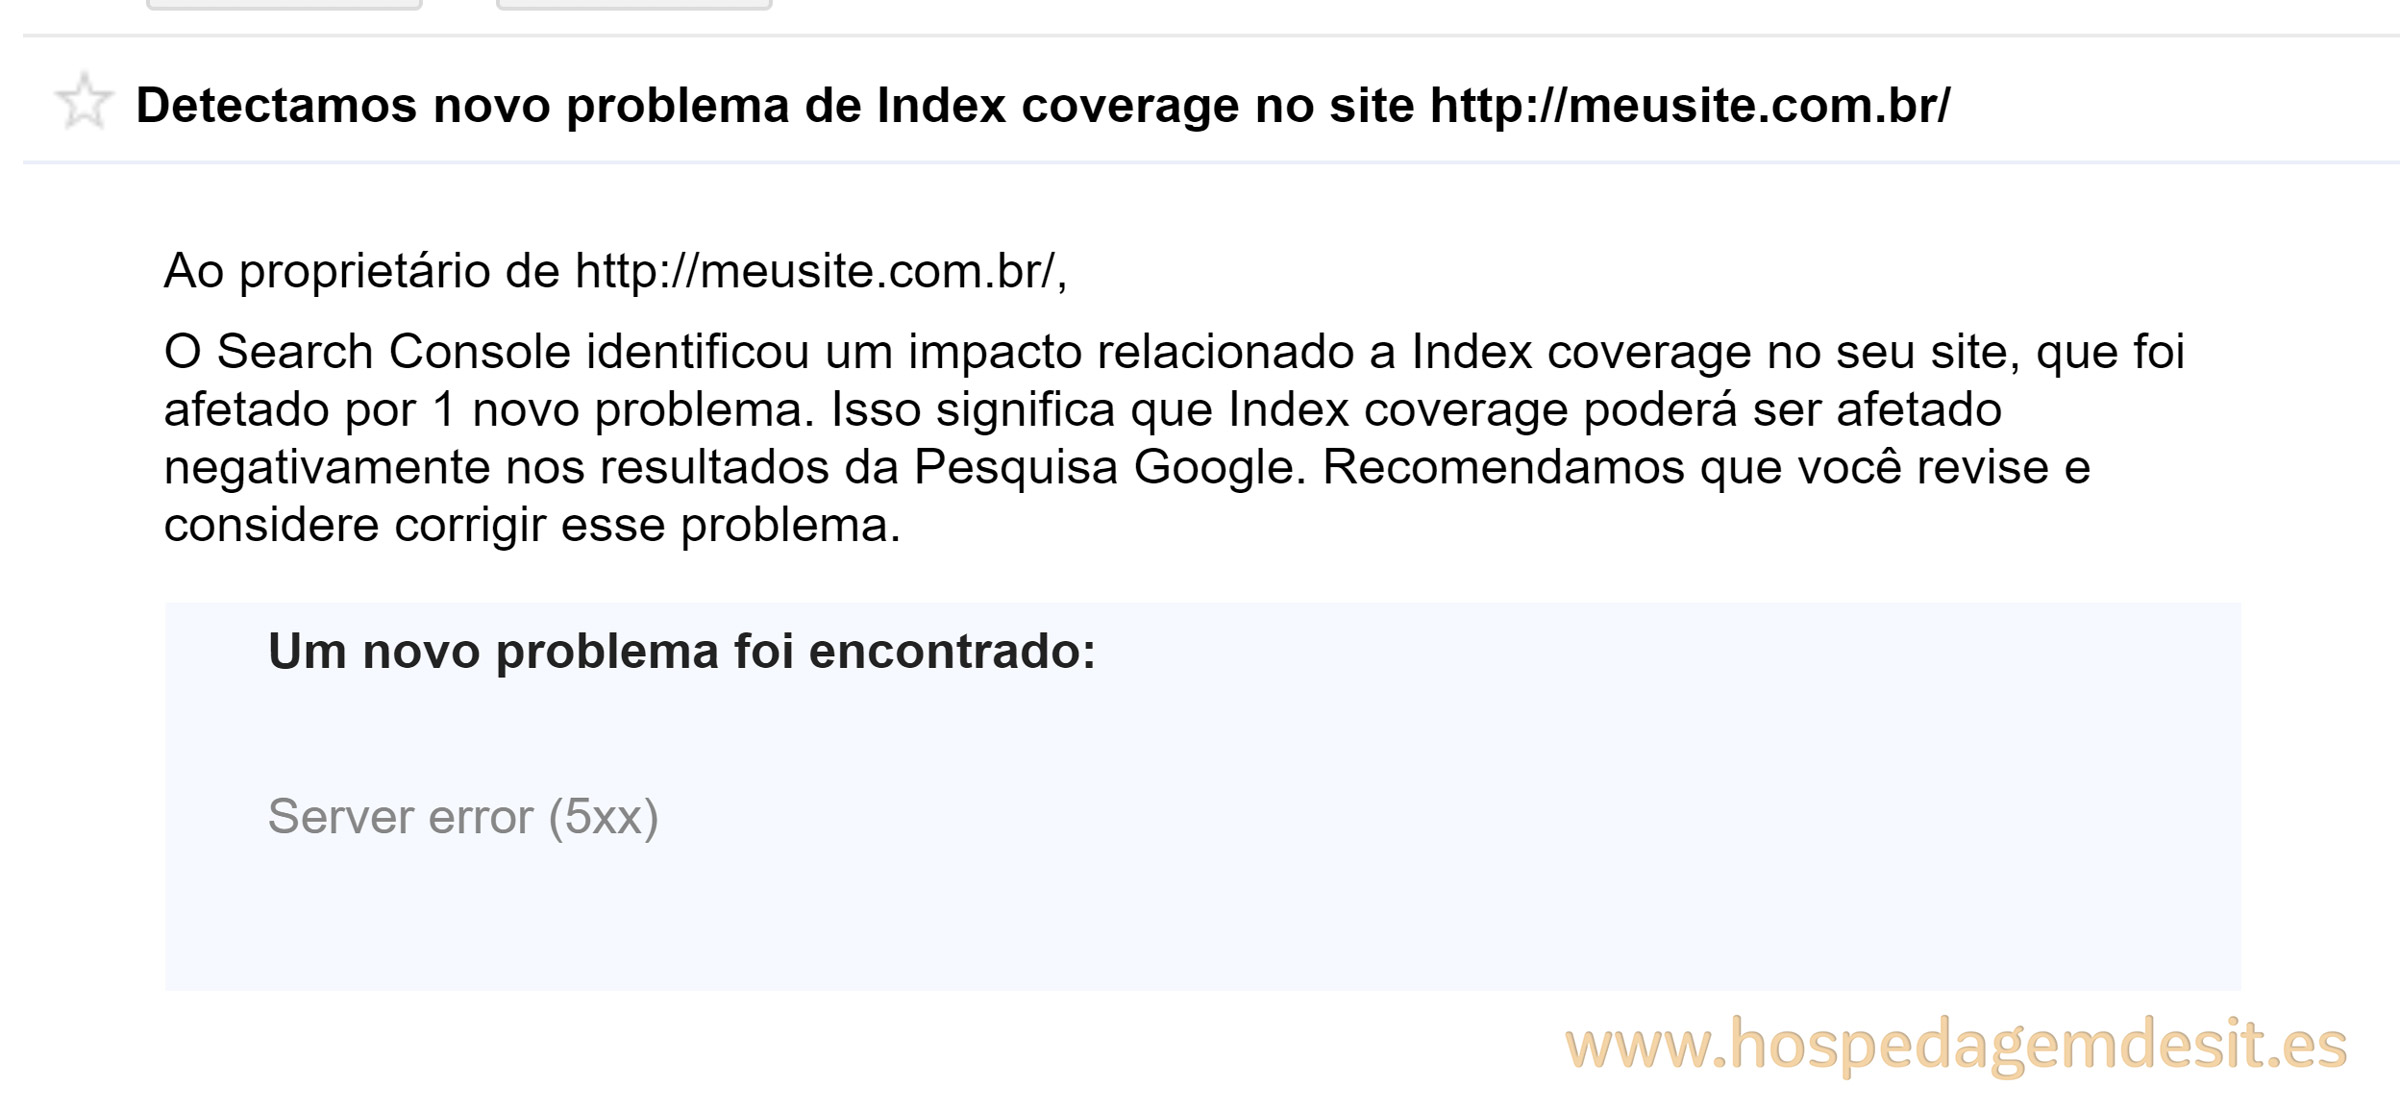 erro de index coverage erro do servidor